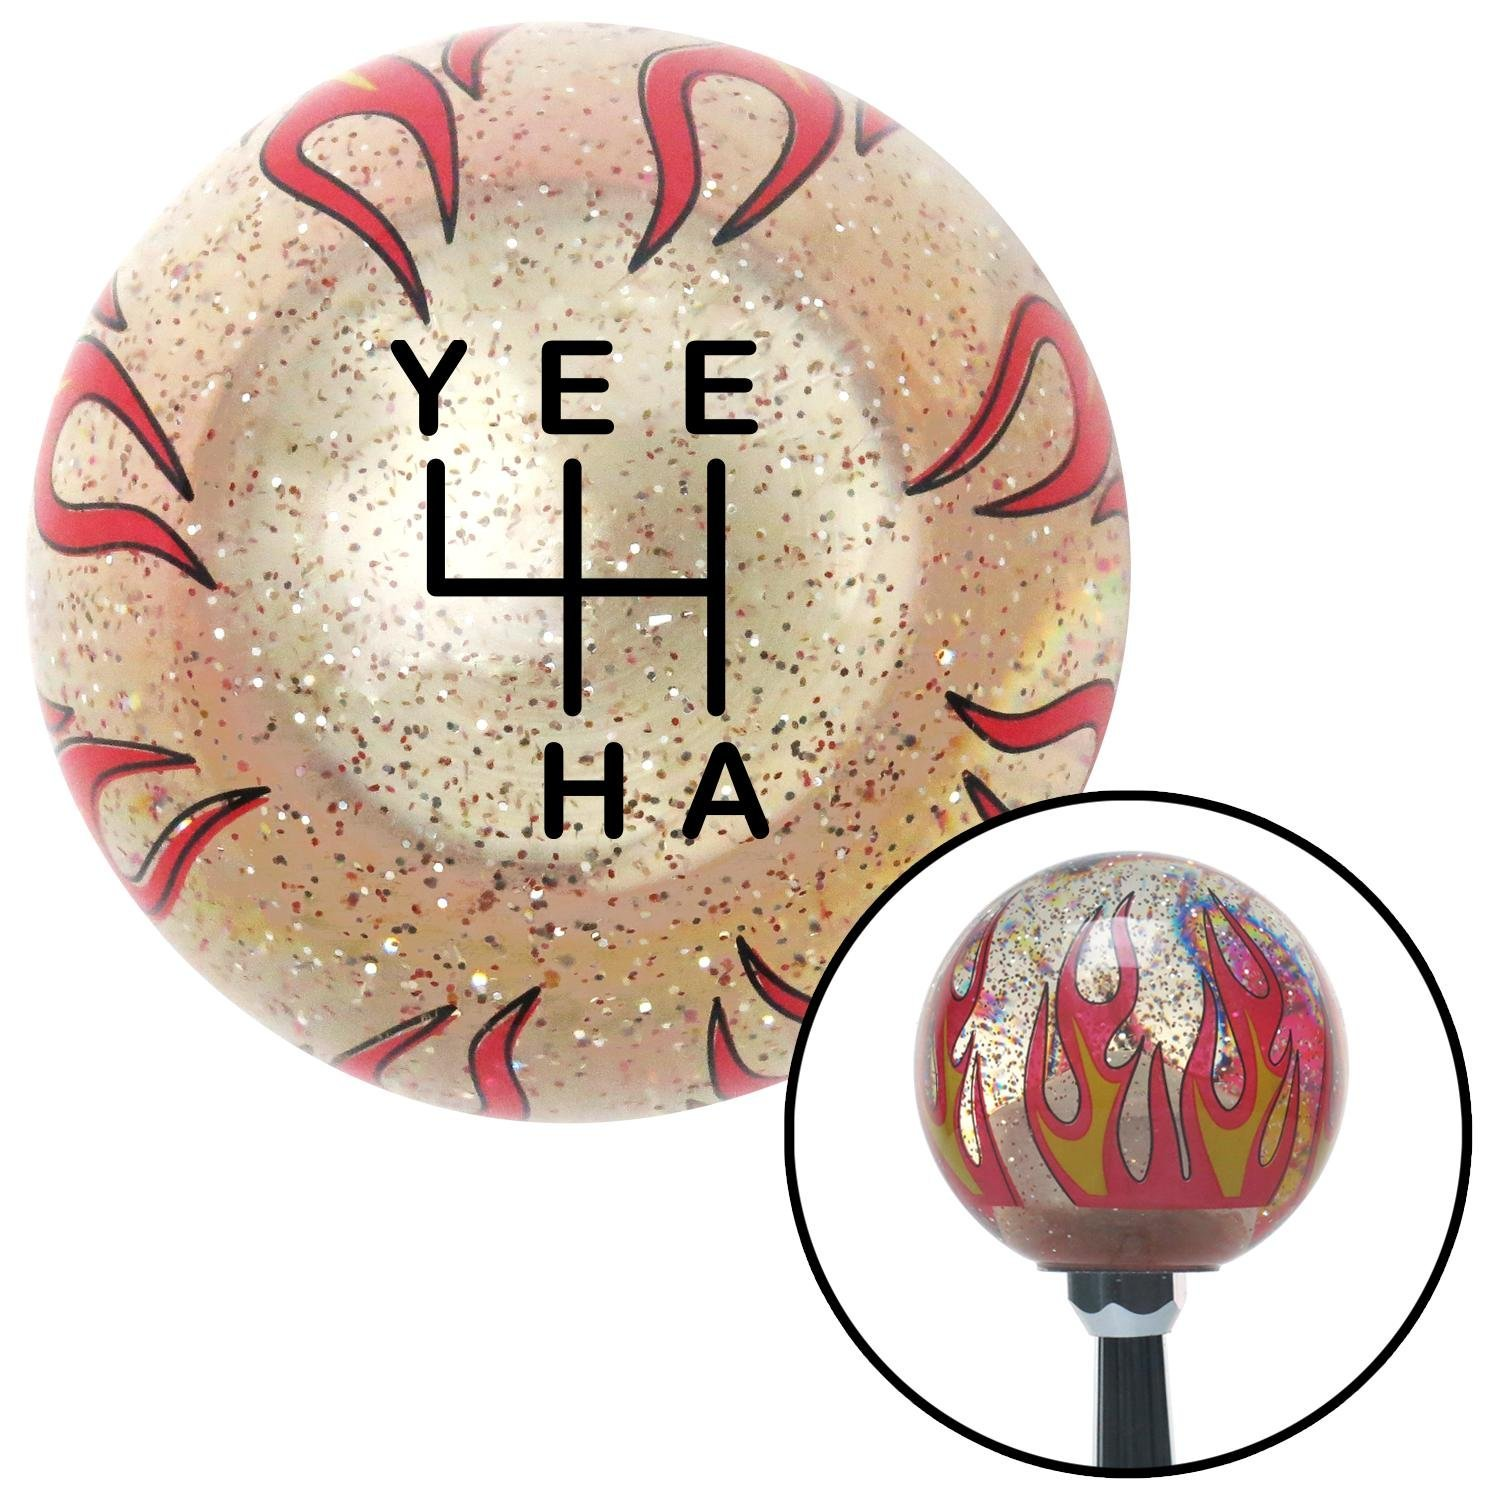 American Shifter 302228 Shift Knob Black YeeHa 4 Speed Clear Flame Metal Flake with M16 x 1.5 Insert